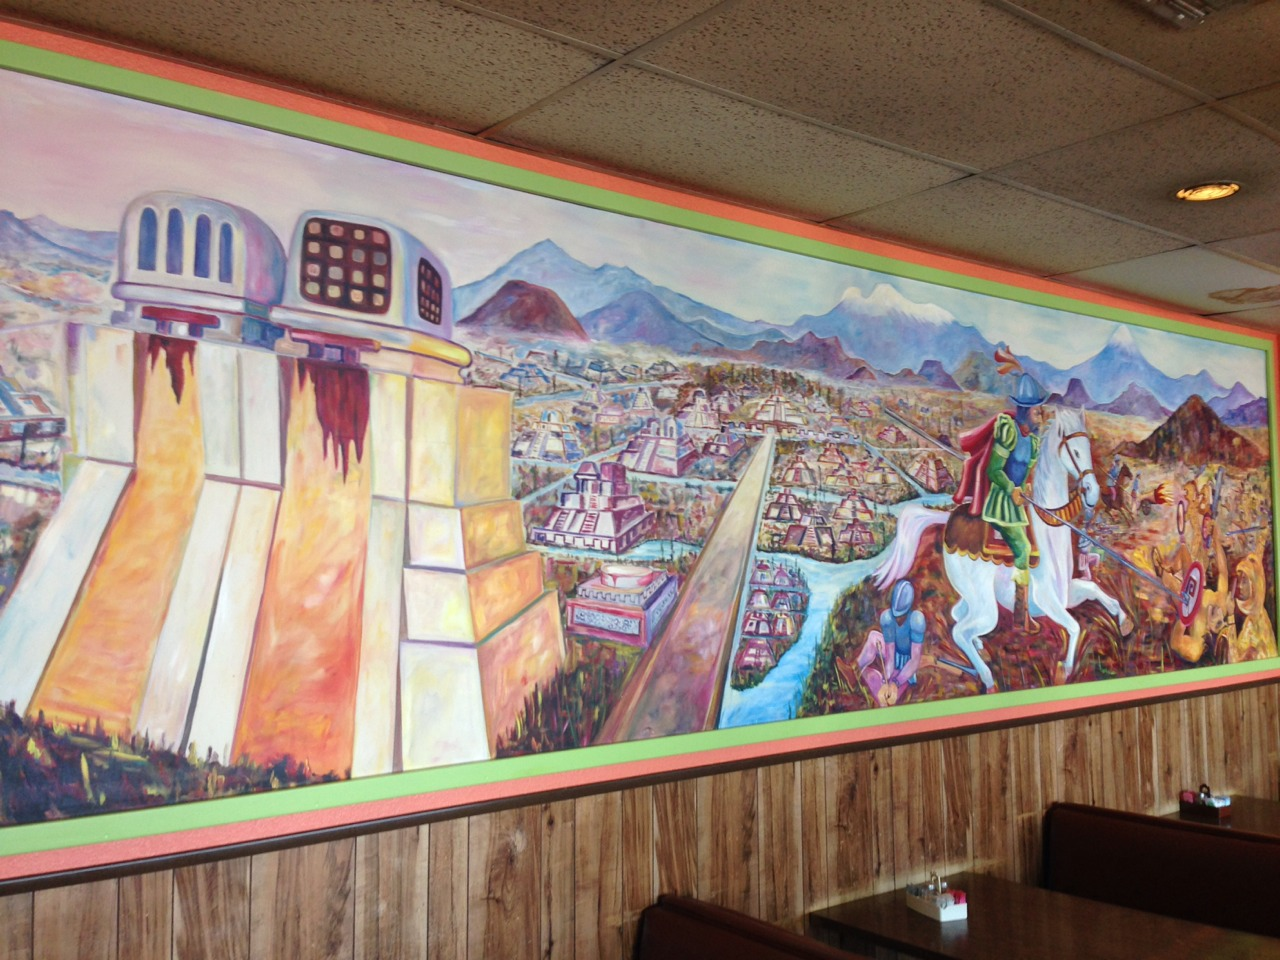 Shout out to the Waco artist who has colorfully depicted Cortez over the Aztecs…. Extermination of my people aside, they make a mean plate of bean and cheese nachos?